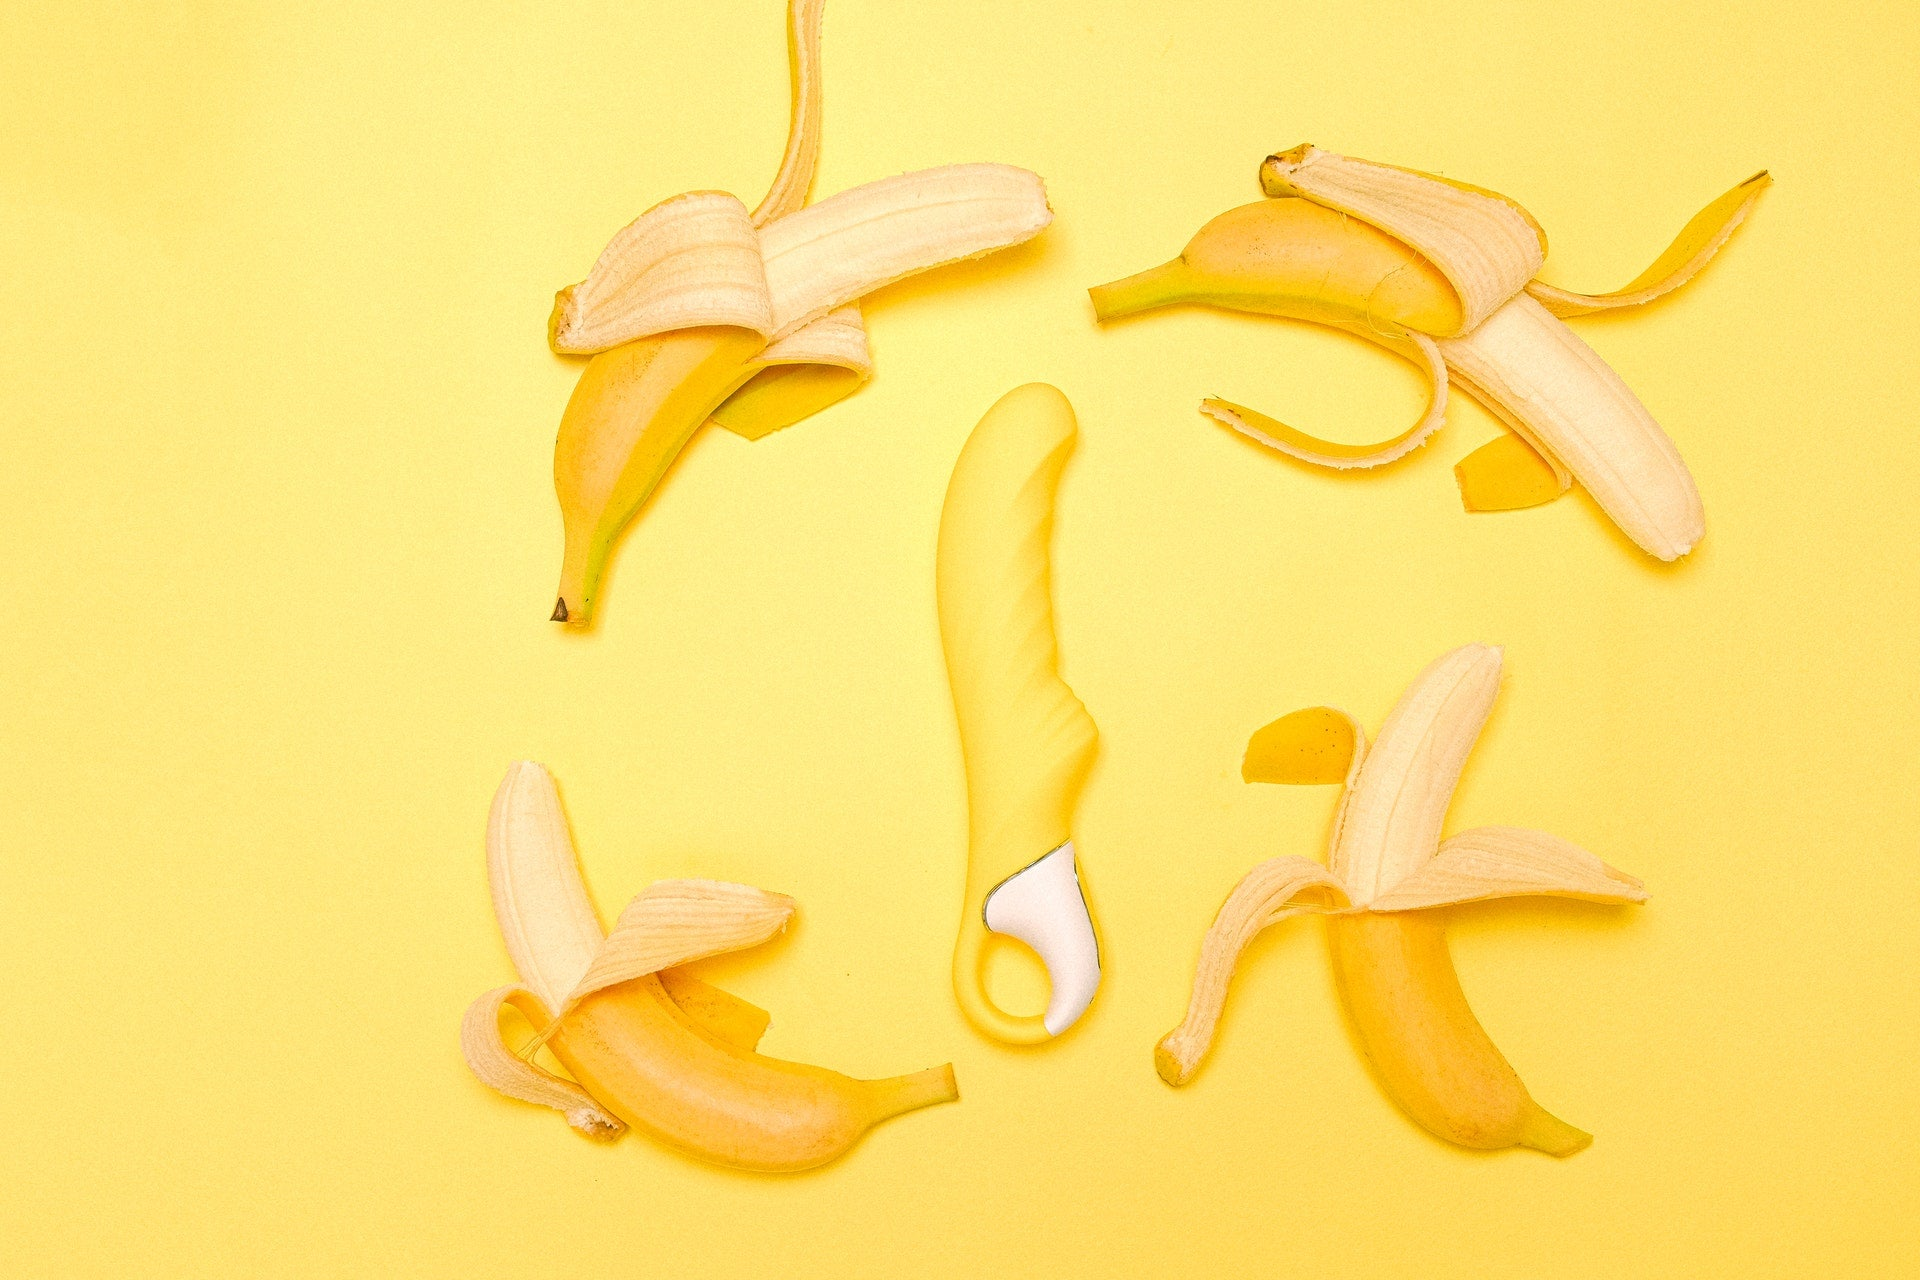 Bananas and Sex Toys